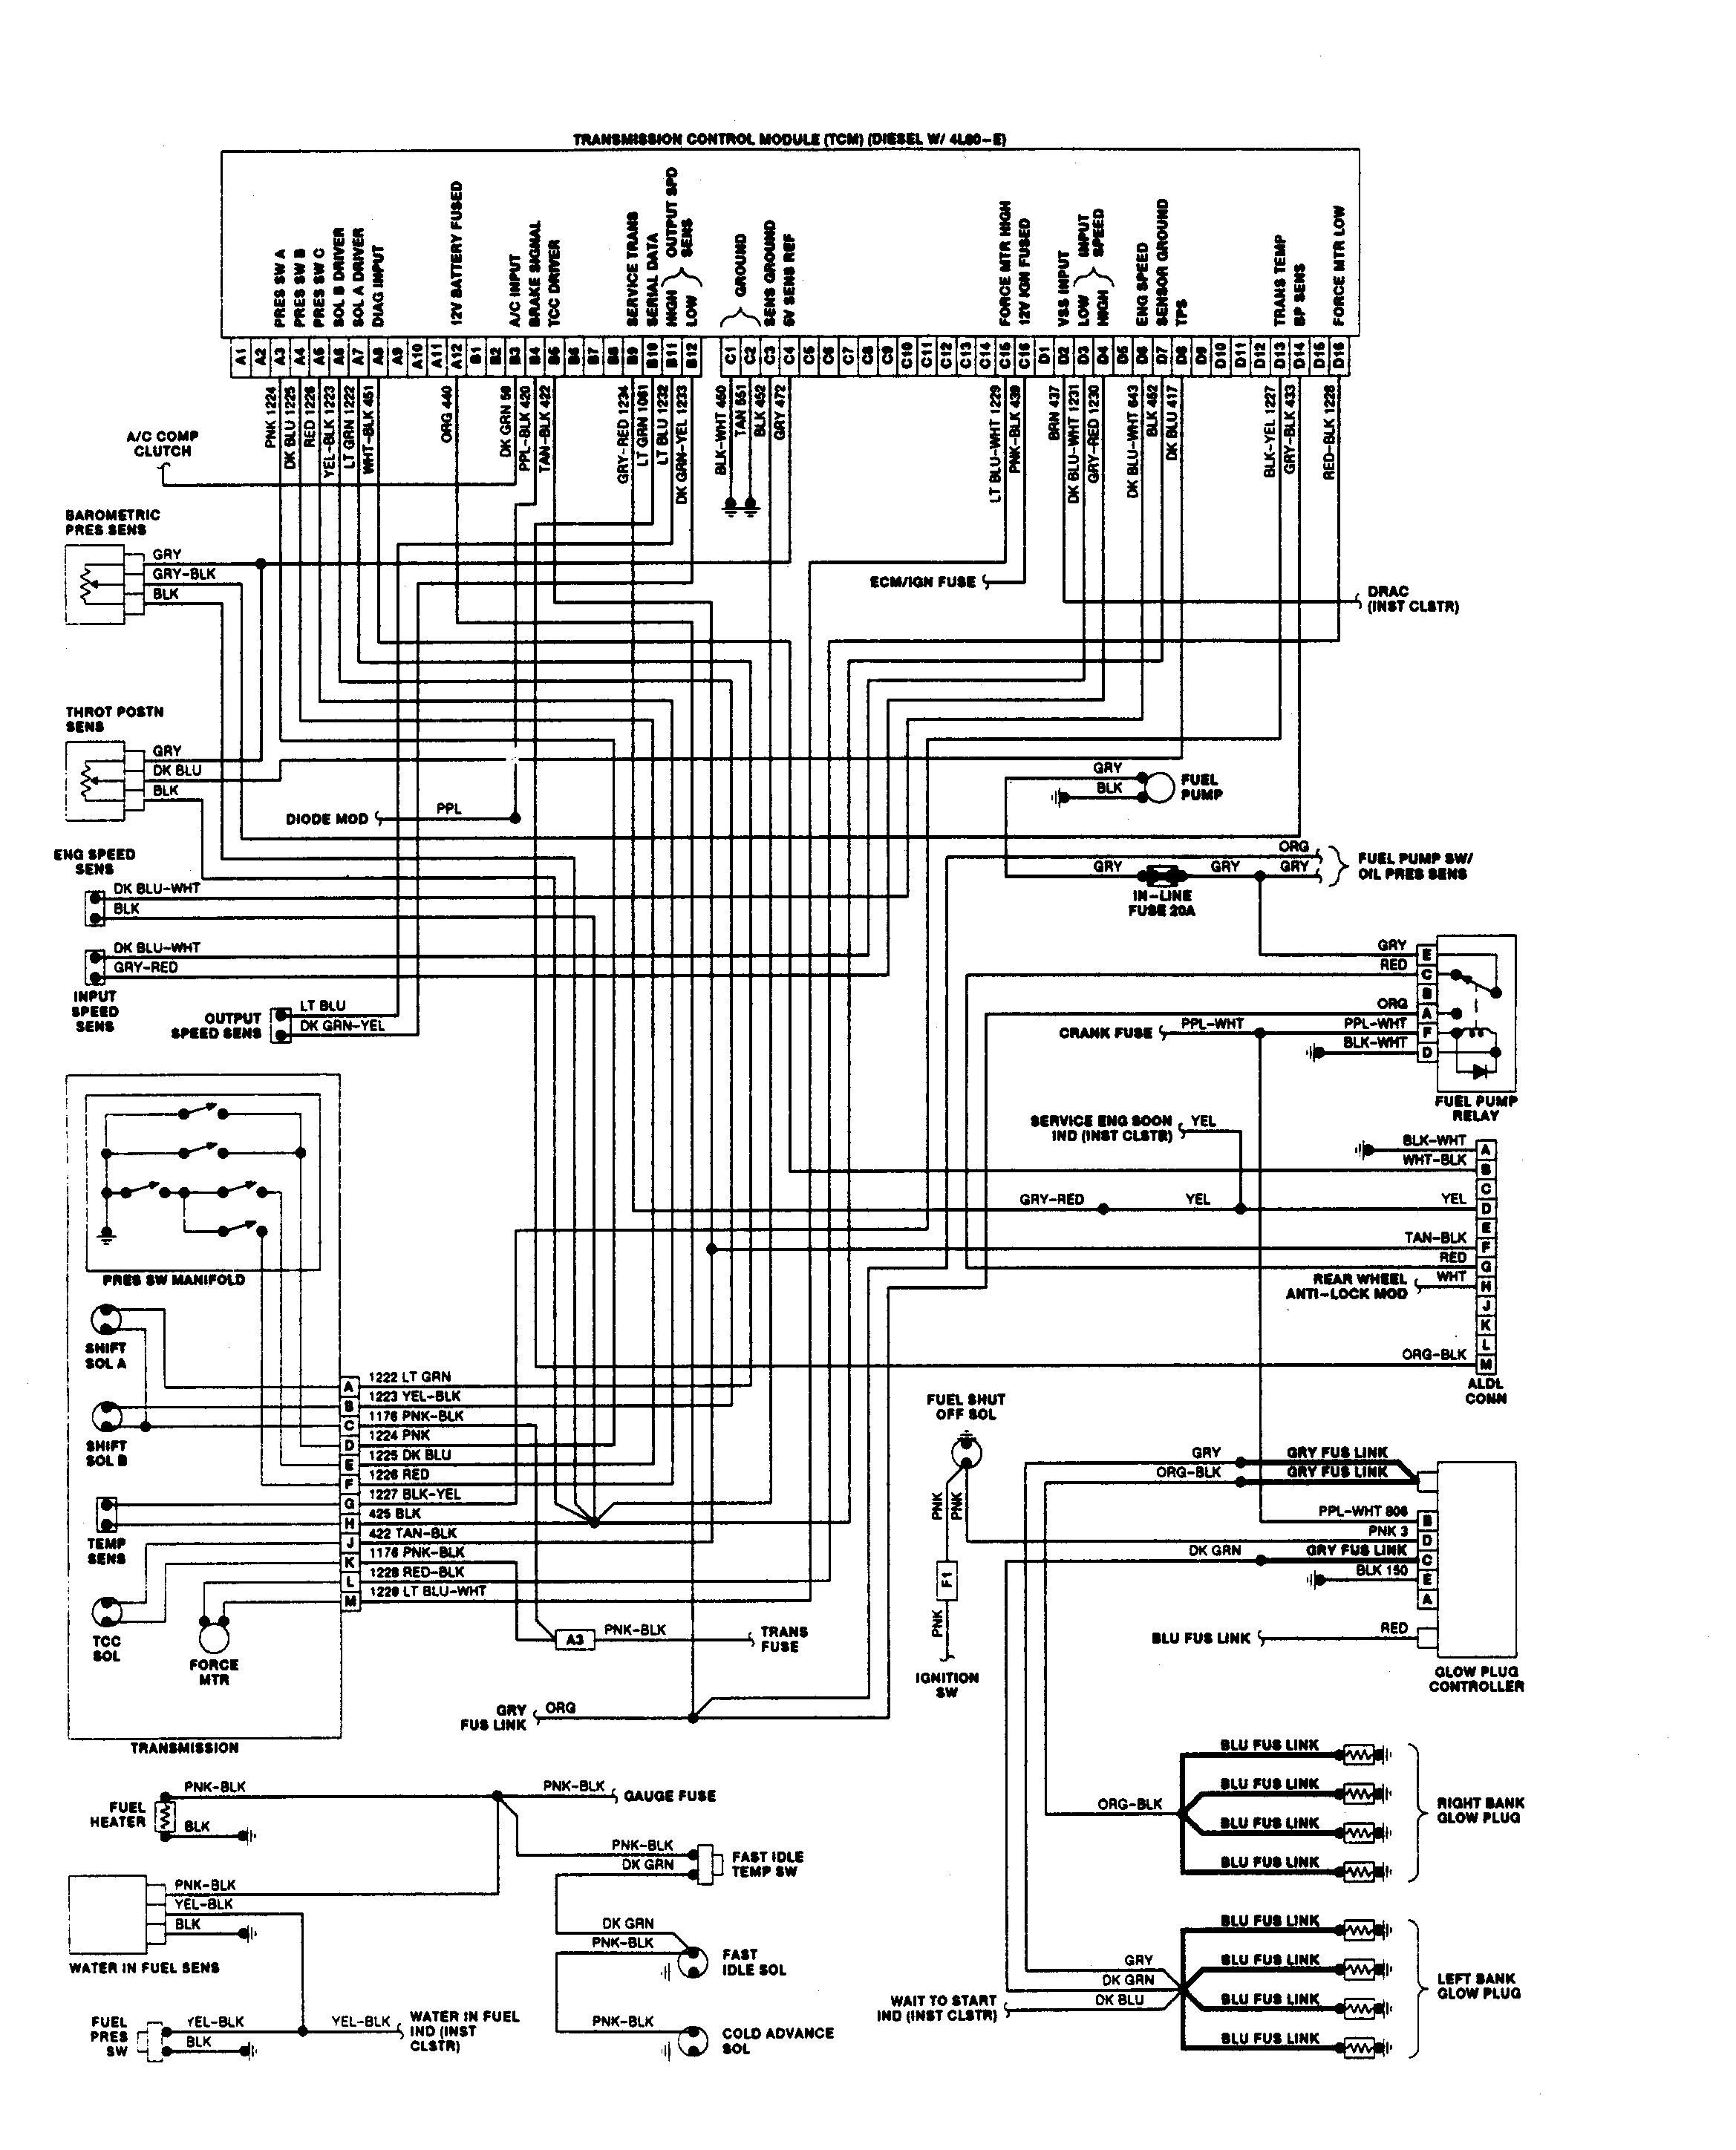 🏆 [DIAGRAM in Pictures Database] 1990 Chevy P30 Wiring Diagram Just  Download or Read Wiring Diagram - CACTUS-FARM-SCHEMATIC.ONYXUM.COMOnyxum.com